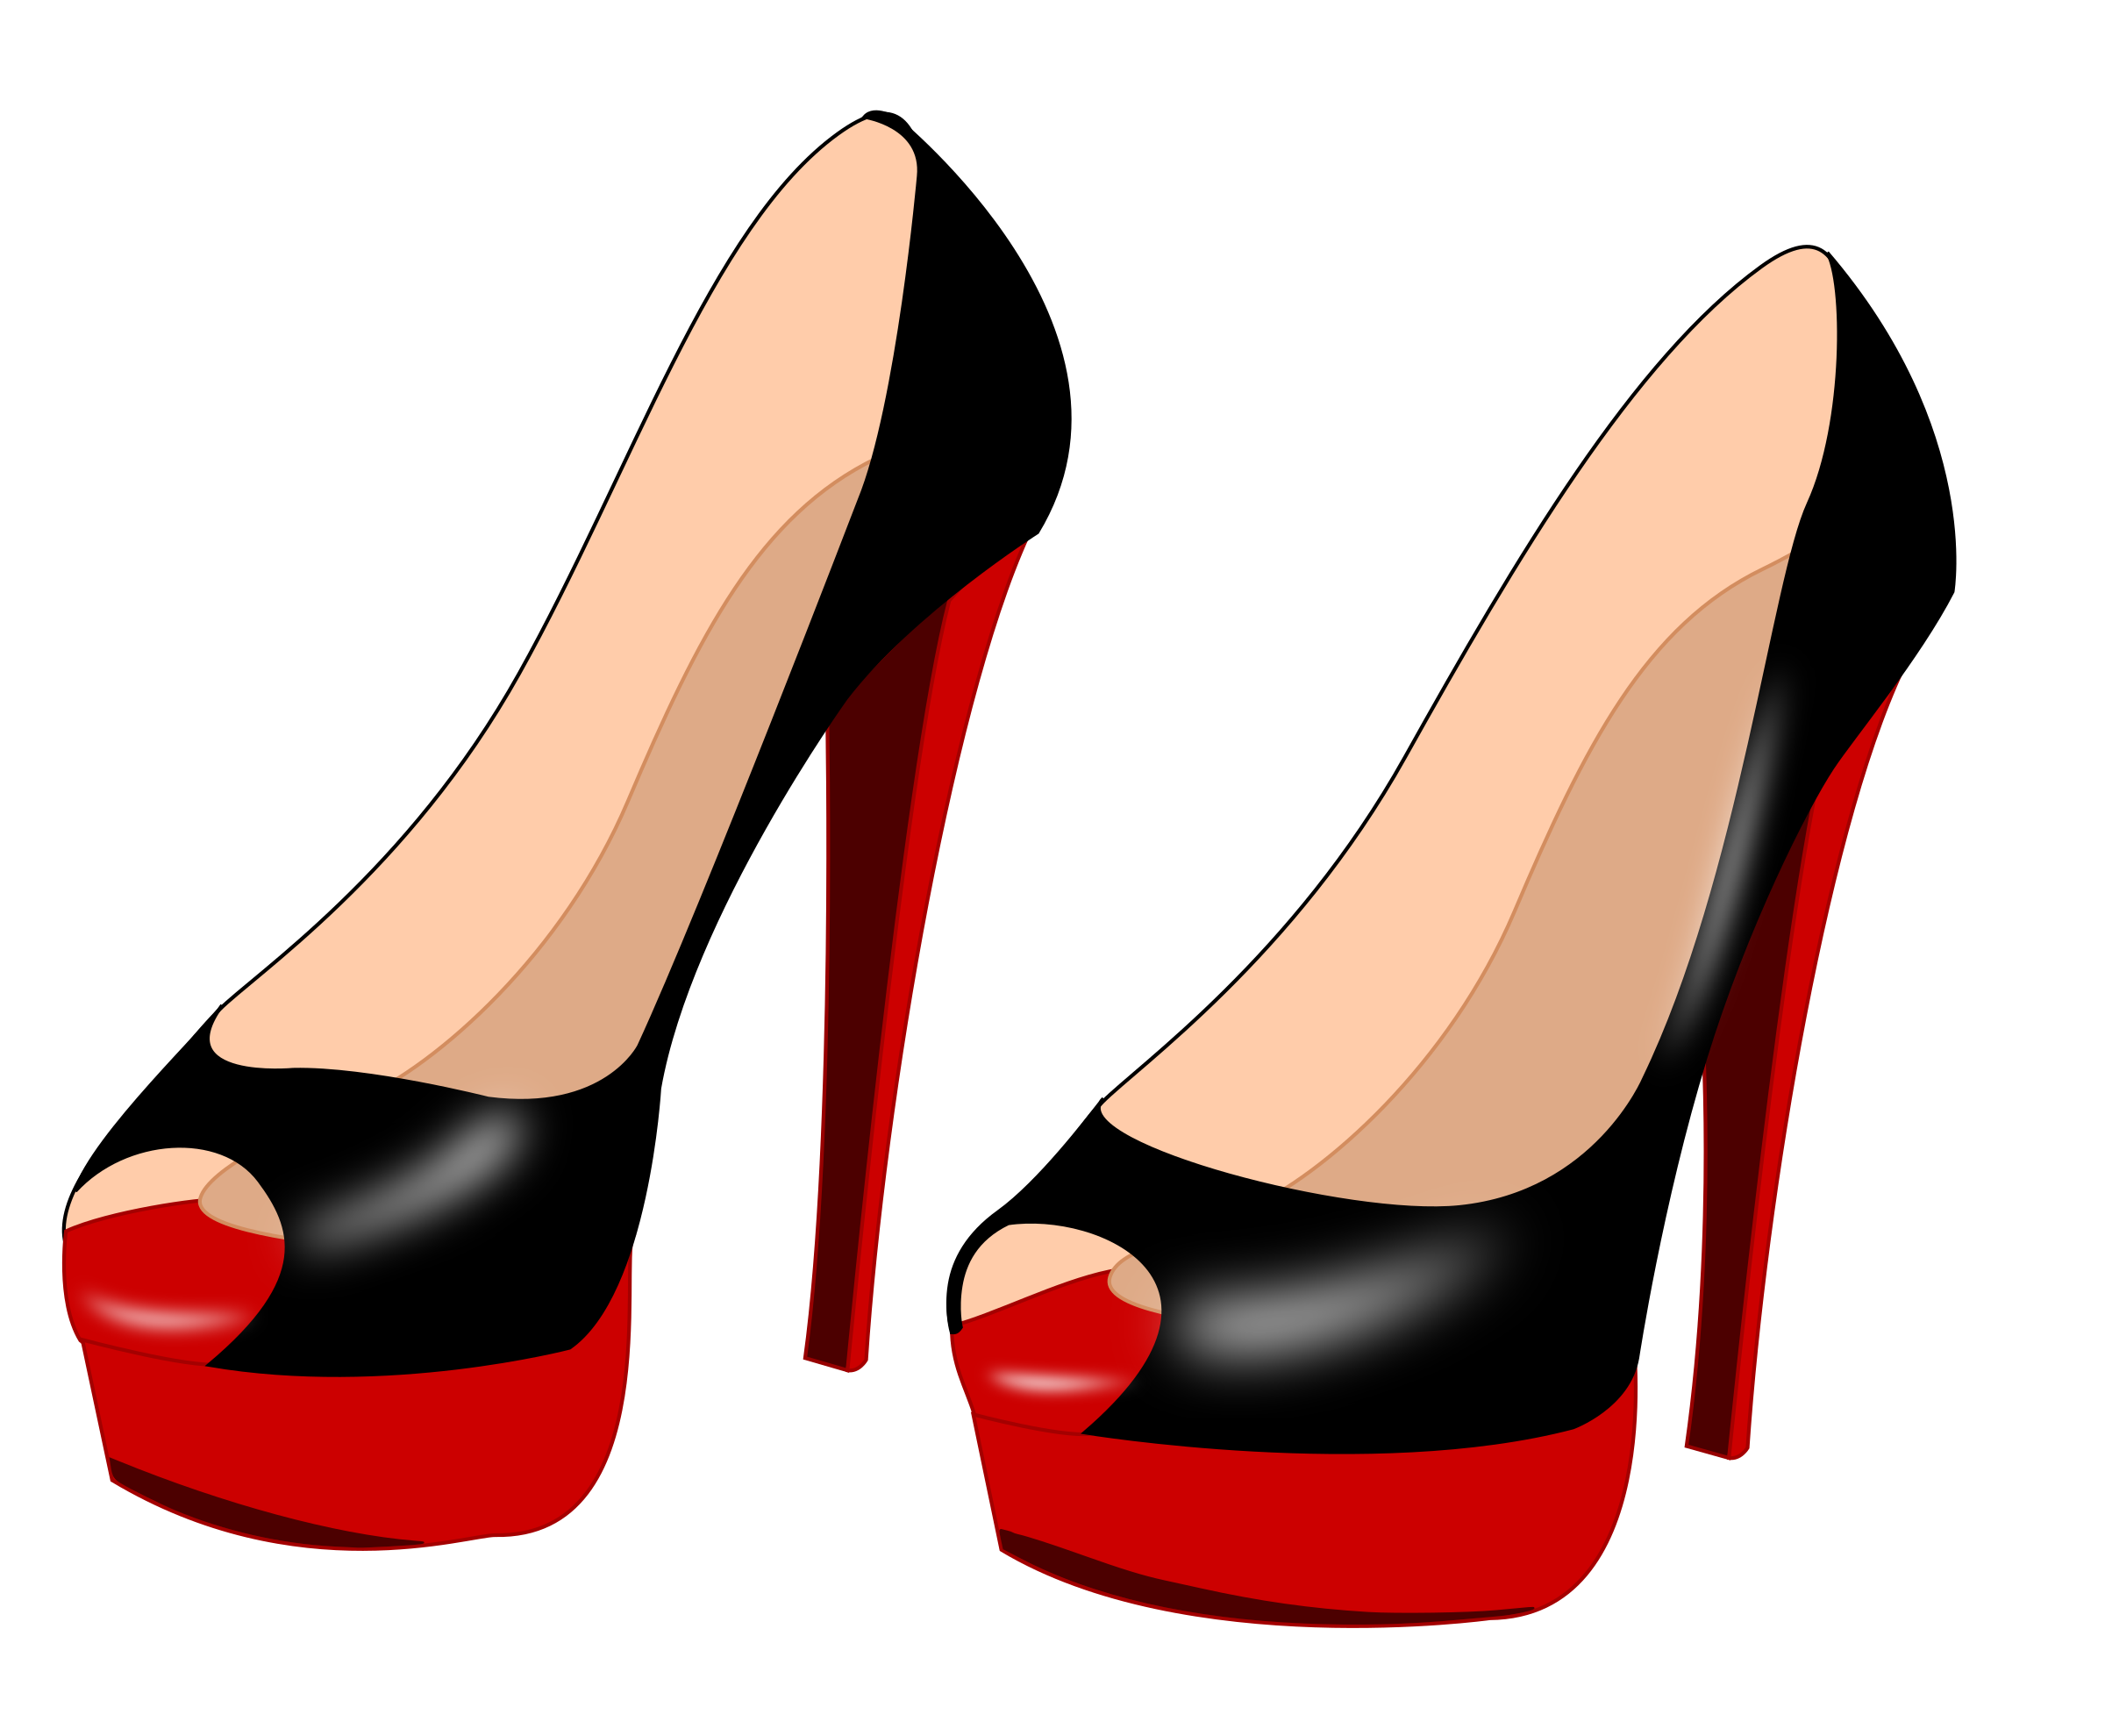 vector royalty free library Heels big image png. High heel clipart.